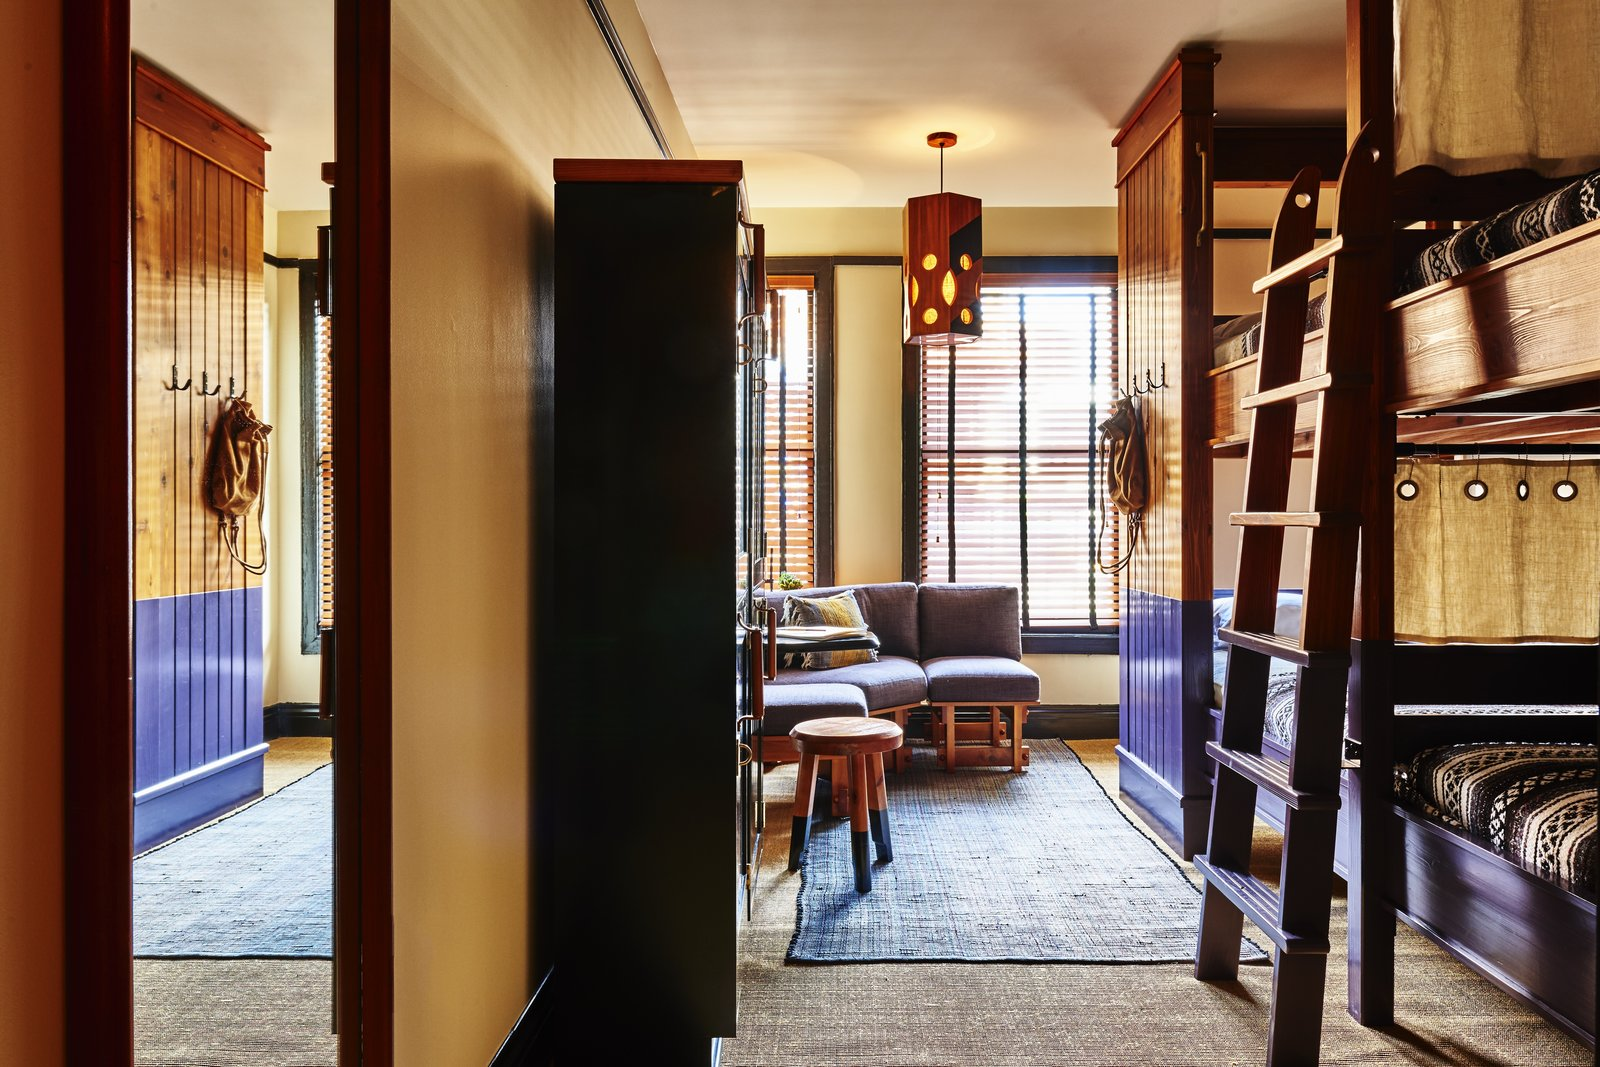 The shared rooms, the most affordable and popular option, are inventive in decor with bunk beds, draperies, and accents of purple. Tagged: Bedroom, Wardrobe, Pendant Lighting, Bed, Rug Floor, Ceiling Lighting, Storage, and Bunks. A 1920s Office Building Is Revamped as a Craftsman-Inspired Hotel in Los Angeles - Photo 9 of 10